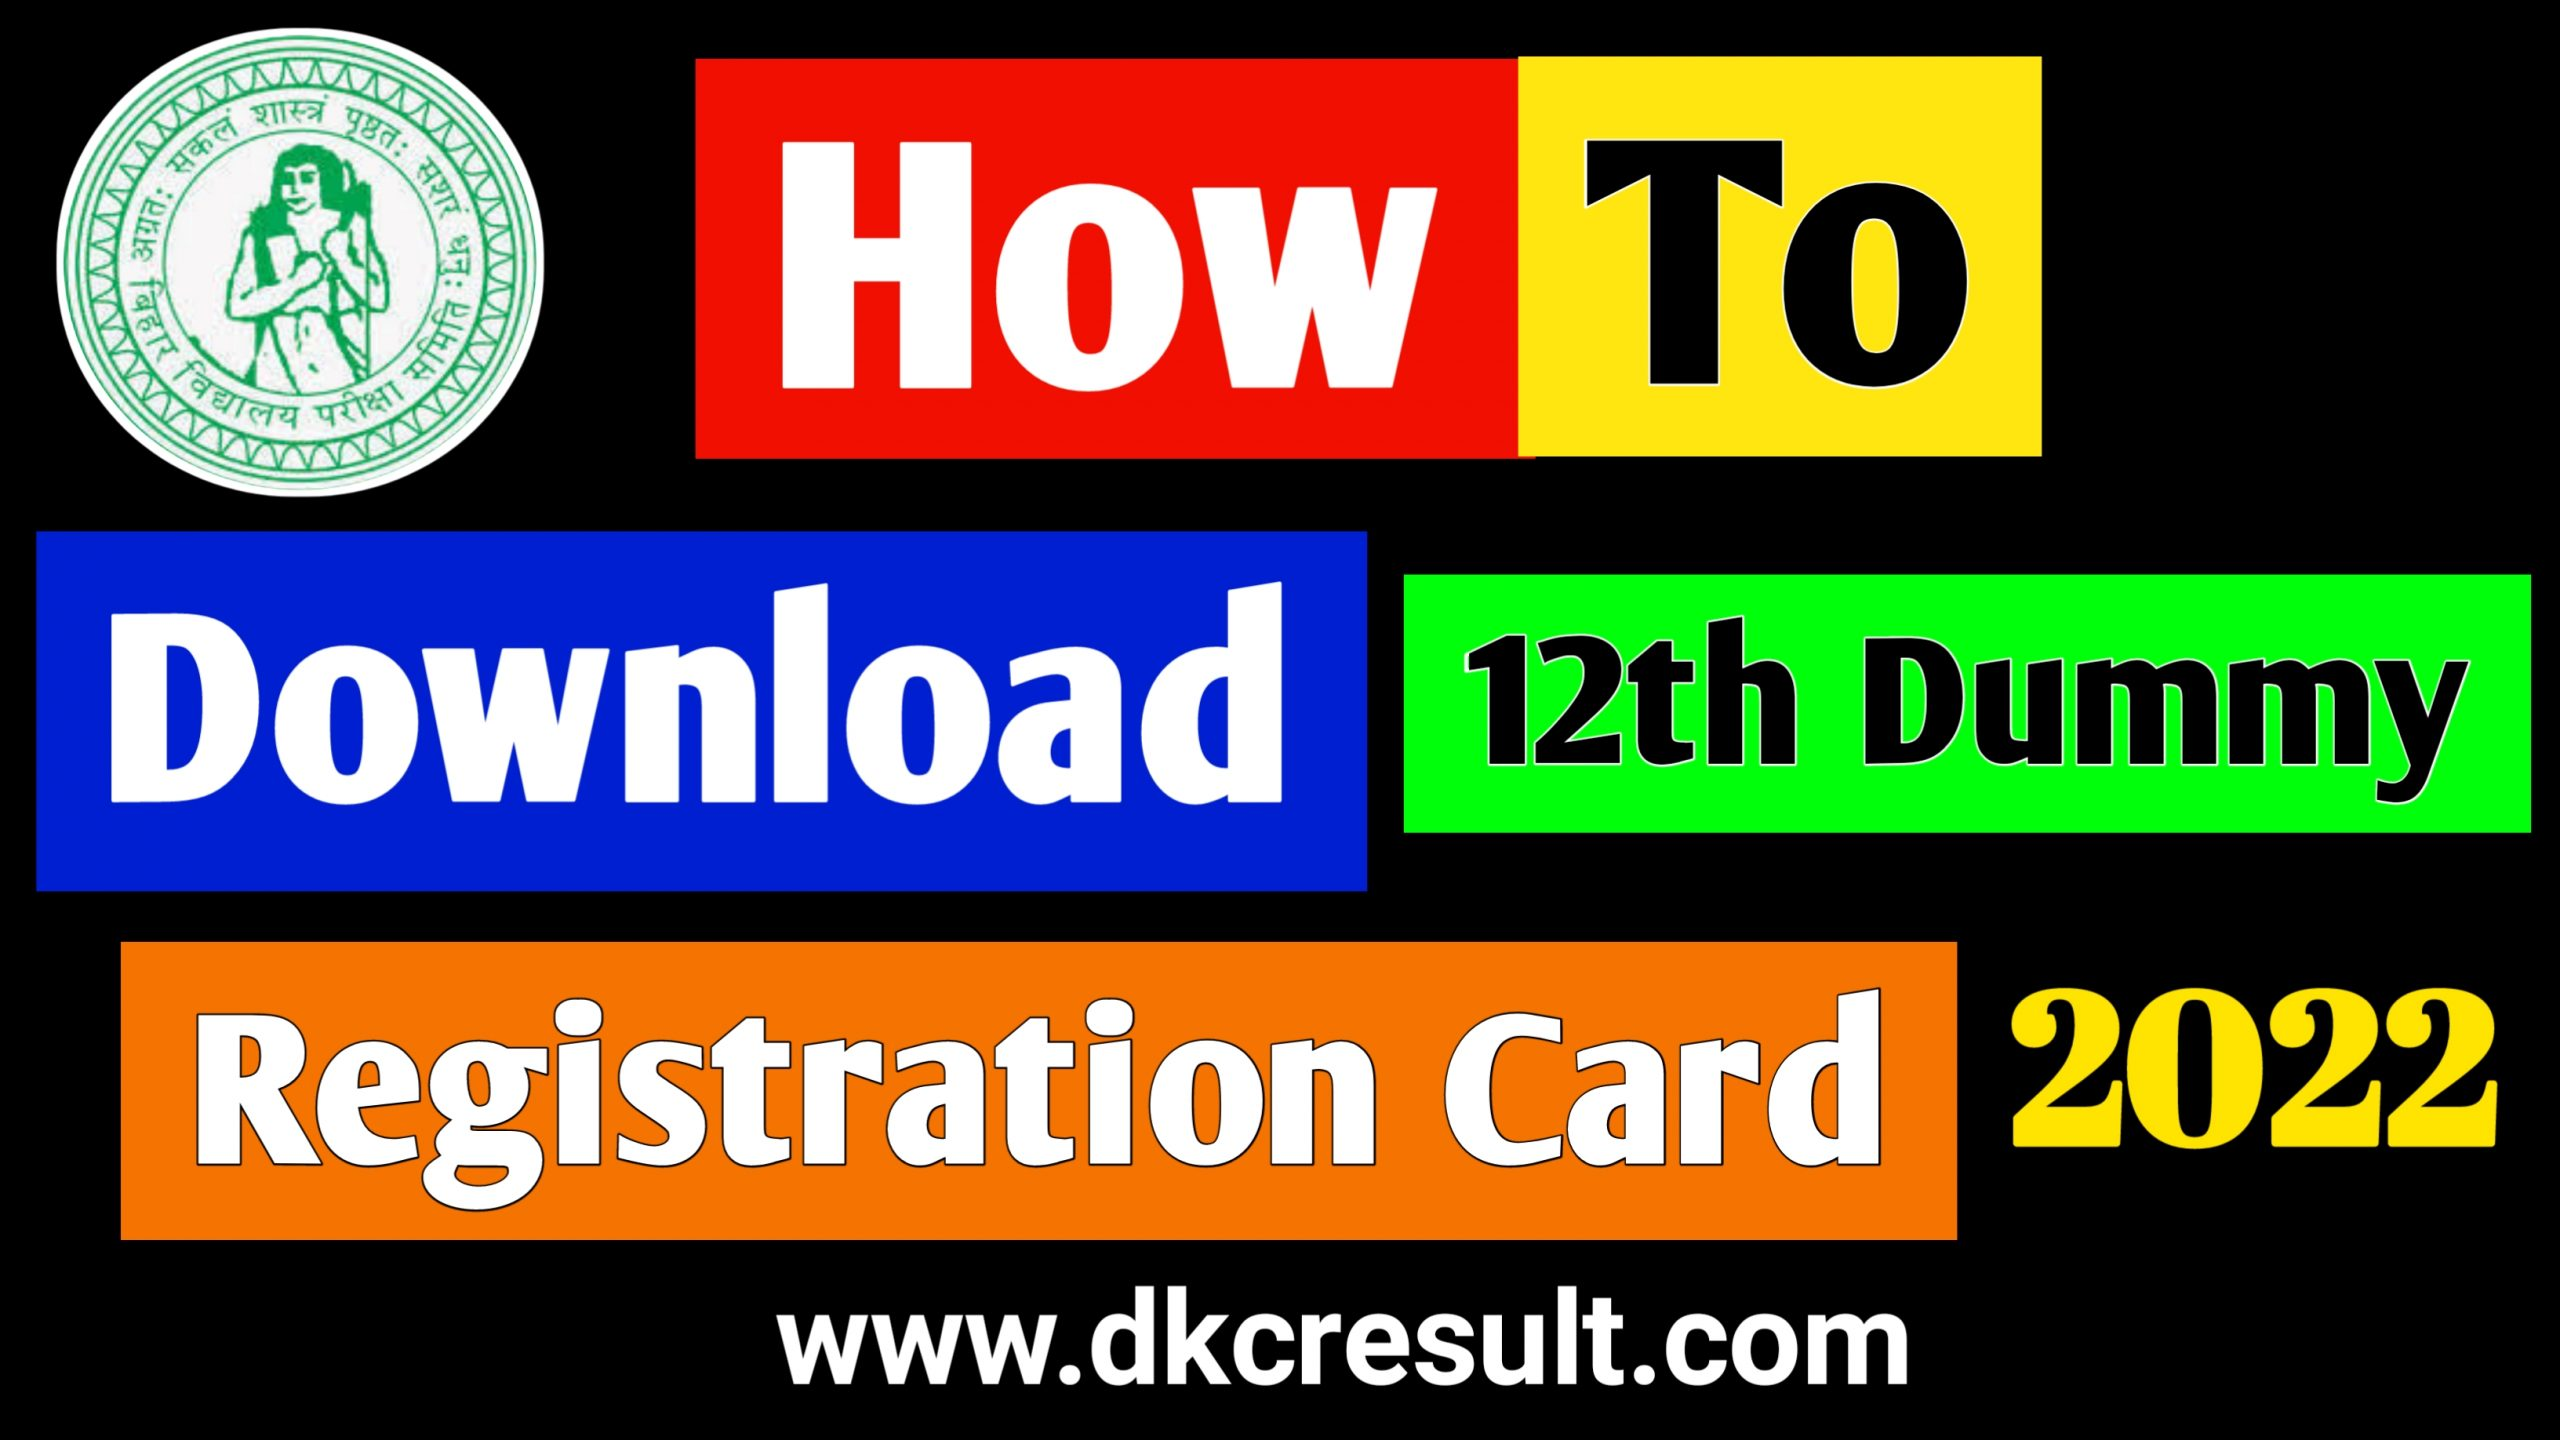 How To Download 12th Dummy Registration Card 2022